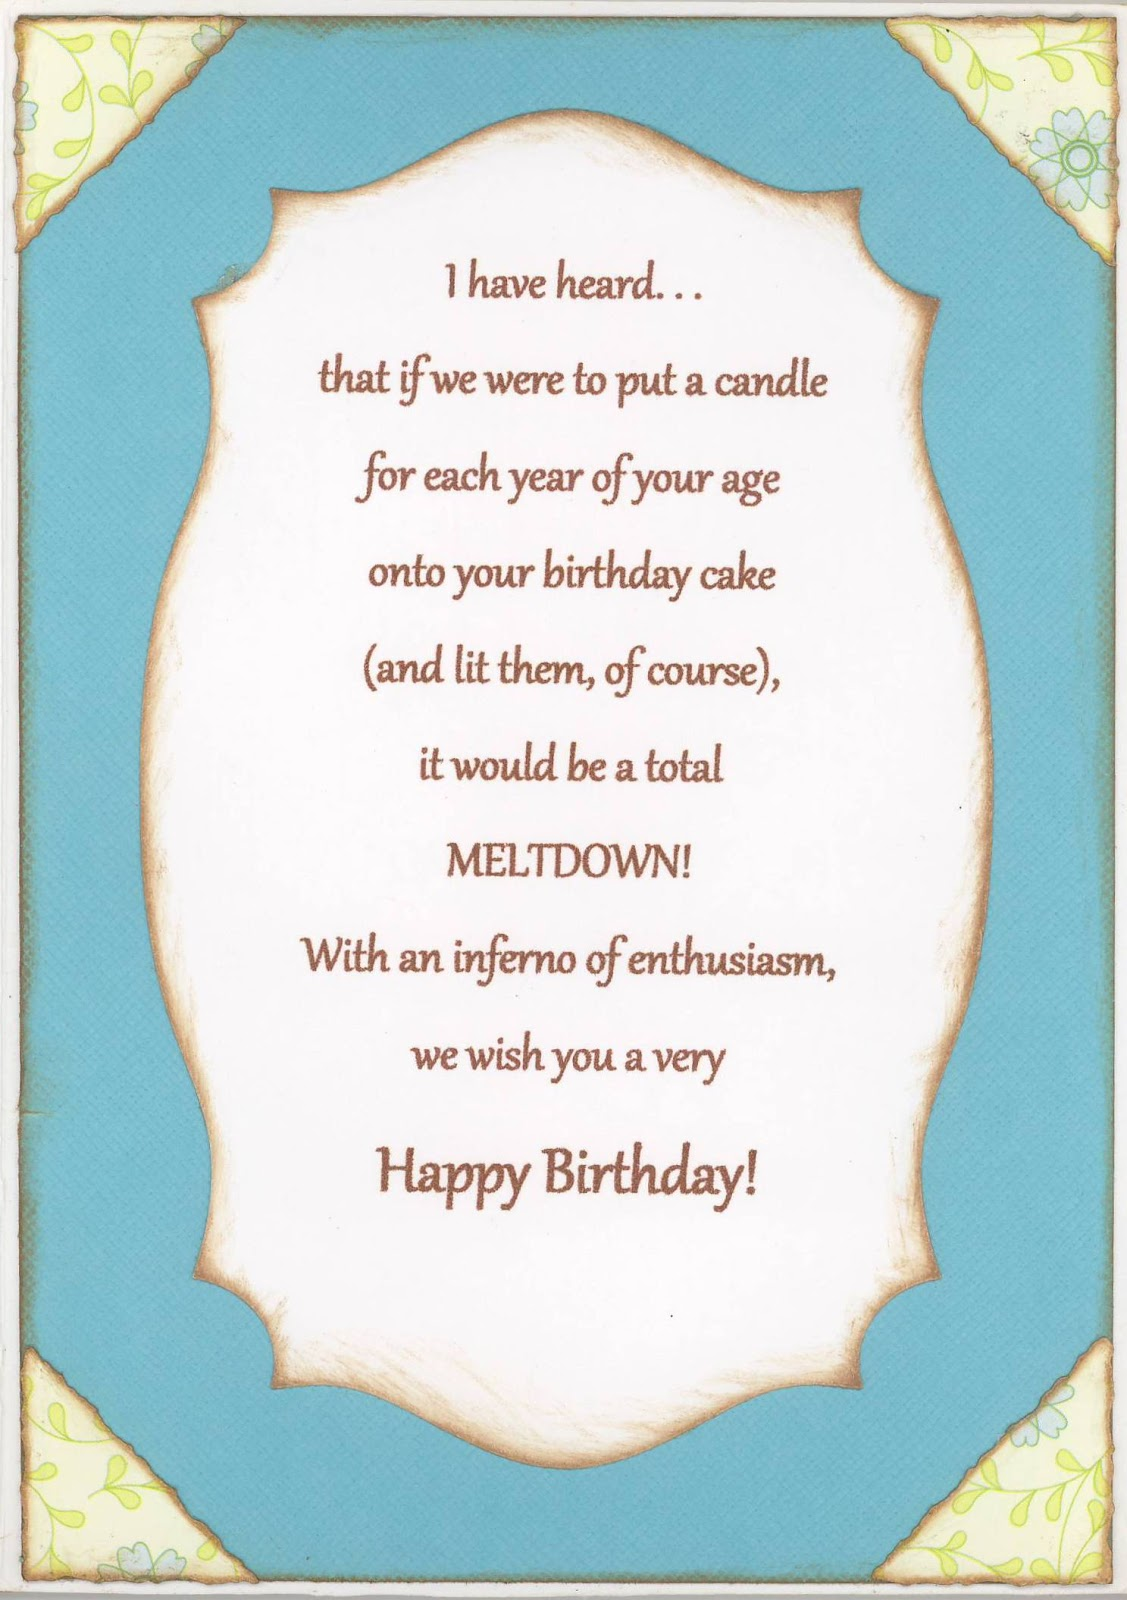 birthday verses for sister ; Gorgeous-White-and-Blue-Themed-with-Birthday-Verses-for-a-Sister-and-Black-Fonts-Colors-and-Black-Border-Colors-and-Rectangular-Shaped-Ideas